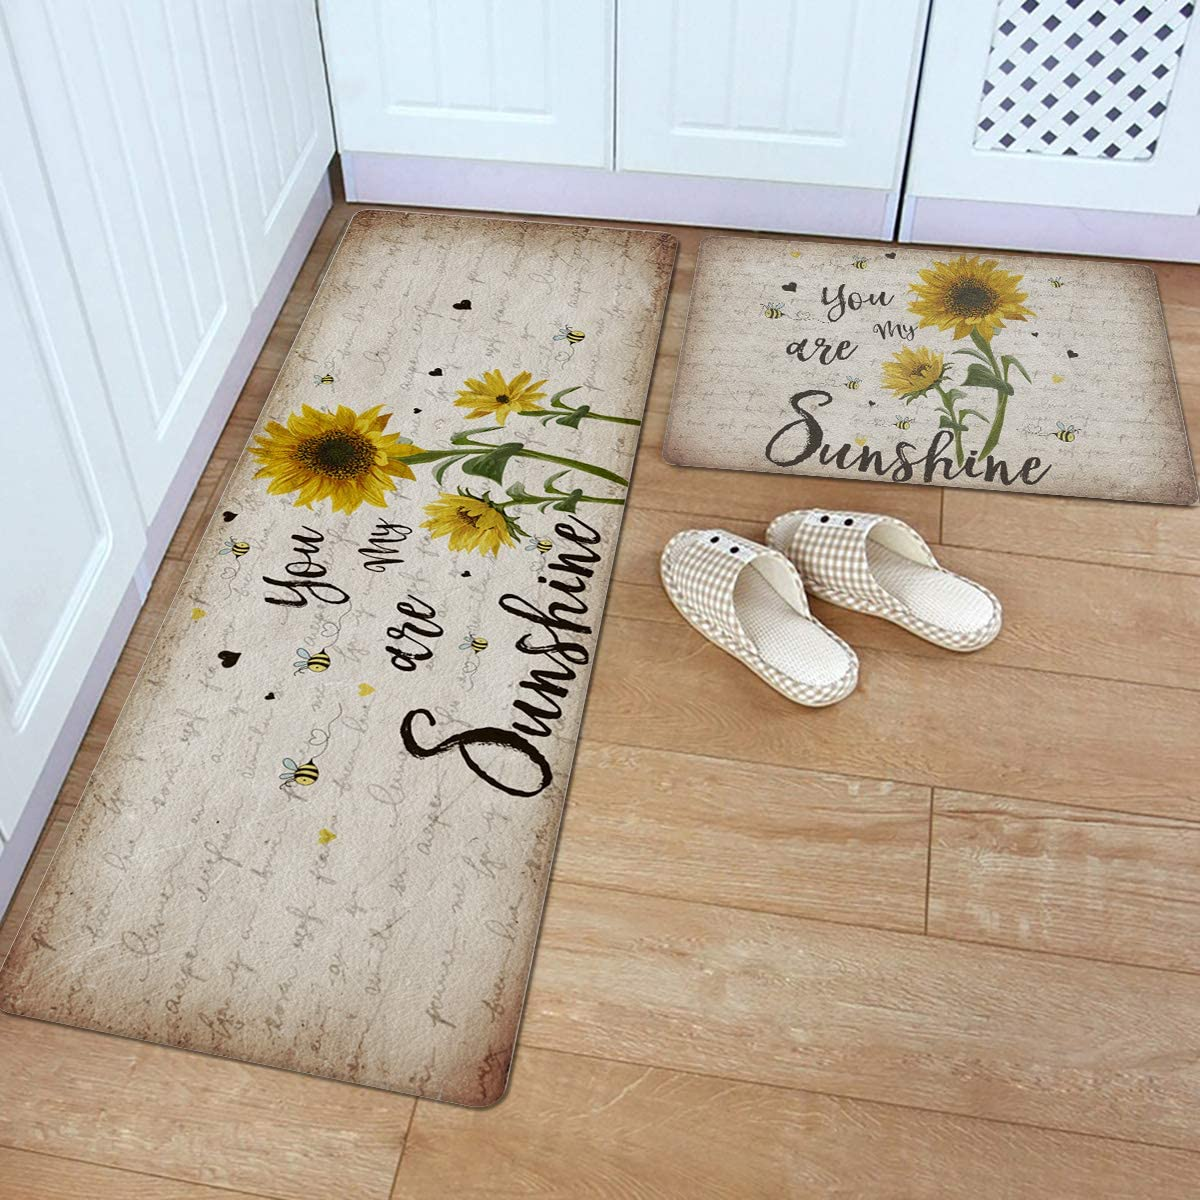 2 Piece Leather Kitchen Rug- You Are Charlotte Mall Sunshine My Max 50% OFF Sunflowe Rustic